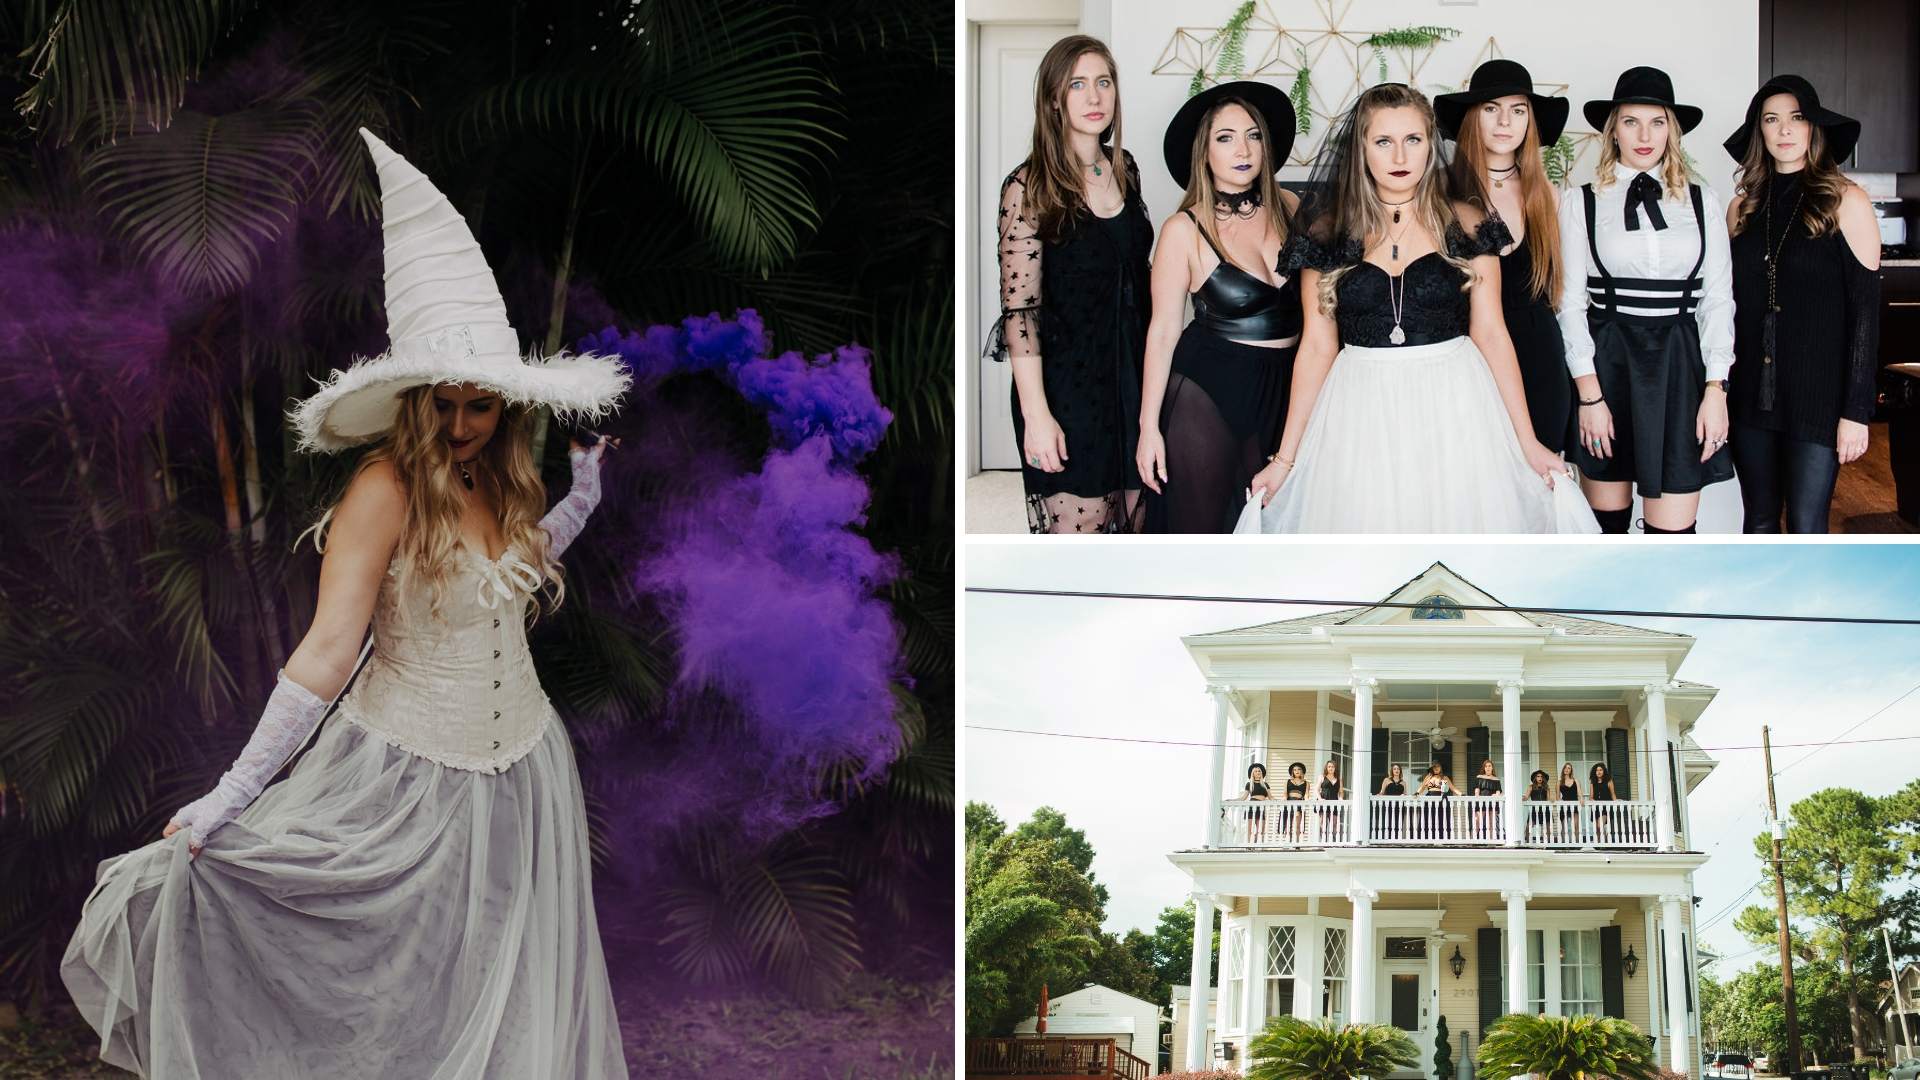 Finally The Bride: Coven Themed Parties That Have Us Totally